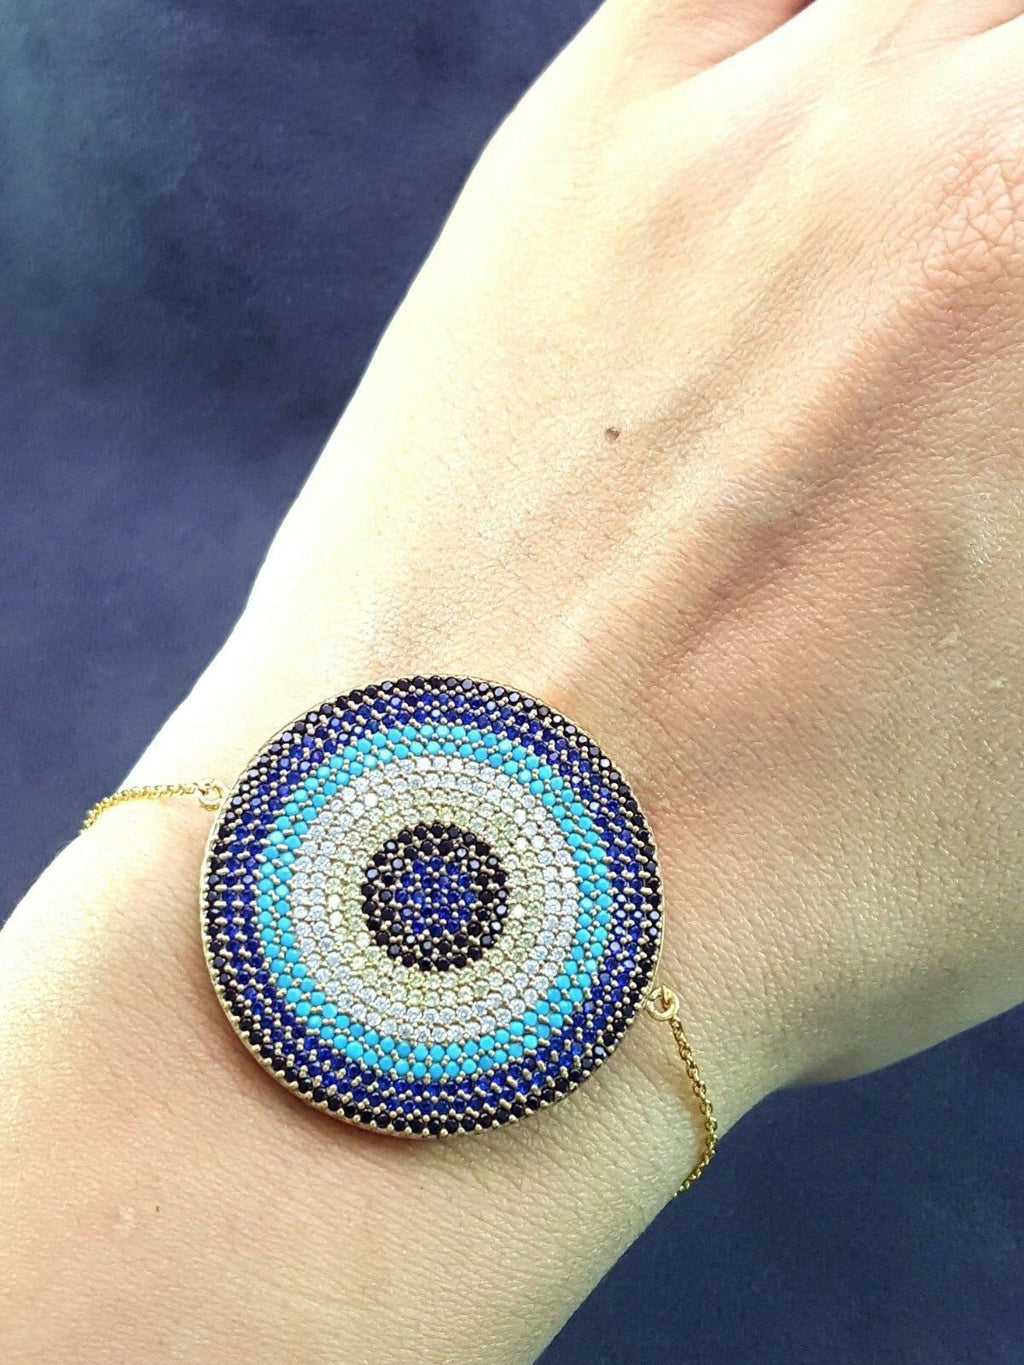 HOT! TURKISH EVIL EYE PROTECTION Turkish Wholesale Handmade 925 Sterling Silver Jewelry THIN BRACELET VK13 - Turkishsilverjewelry